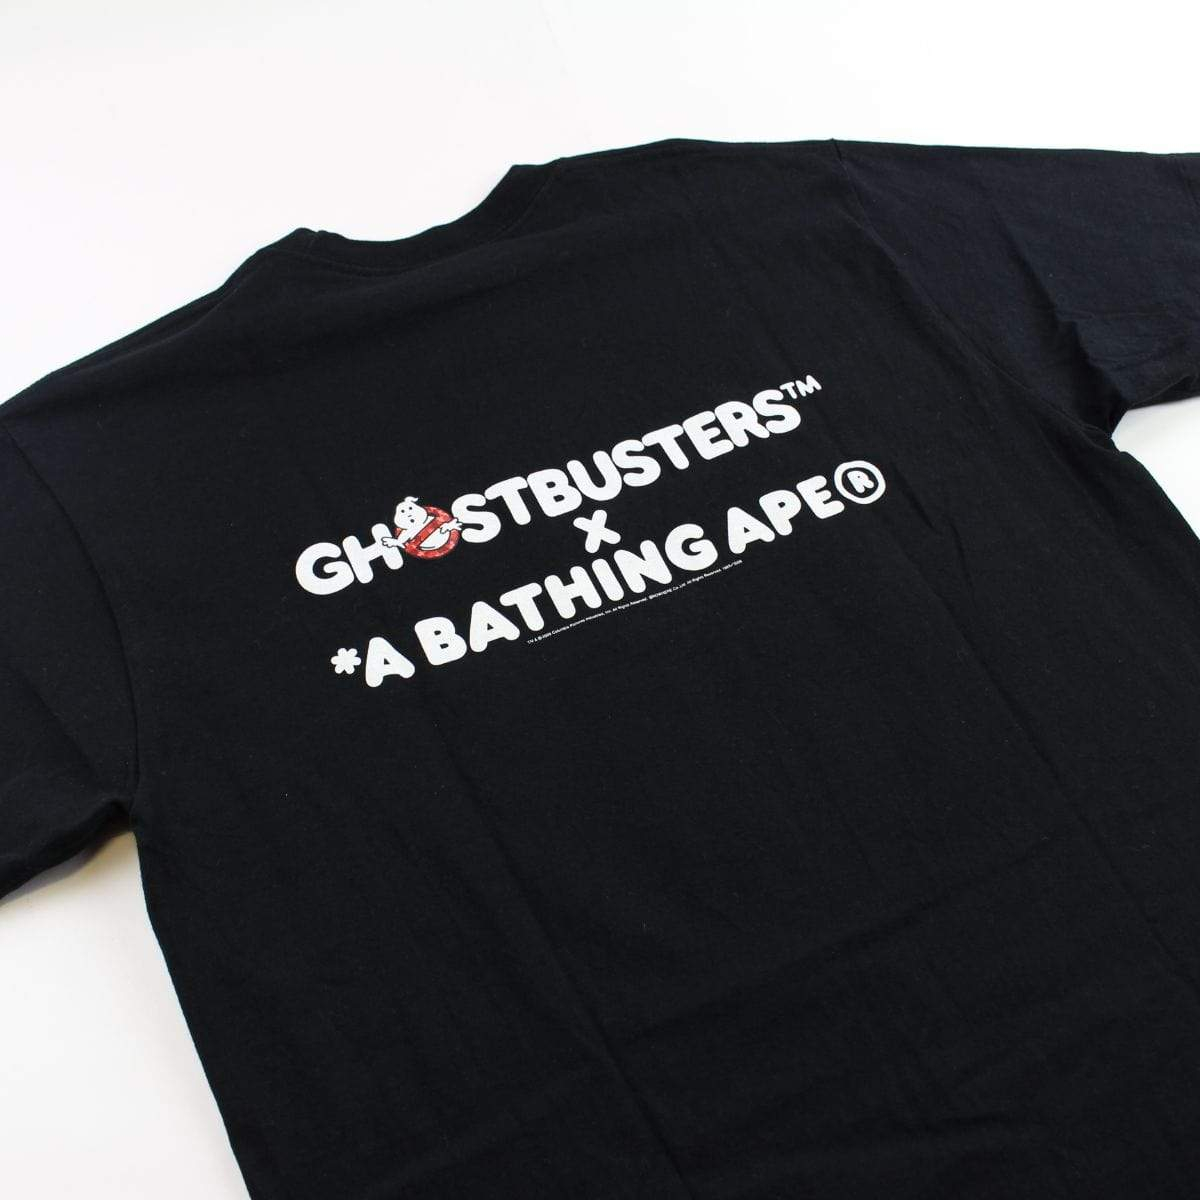 Bape x Ghostbusters red camo ghost logo tee black - SaruGeneral